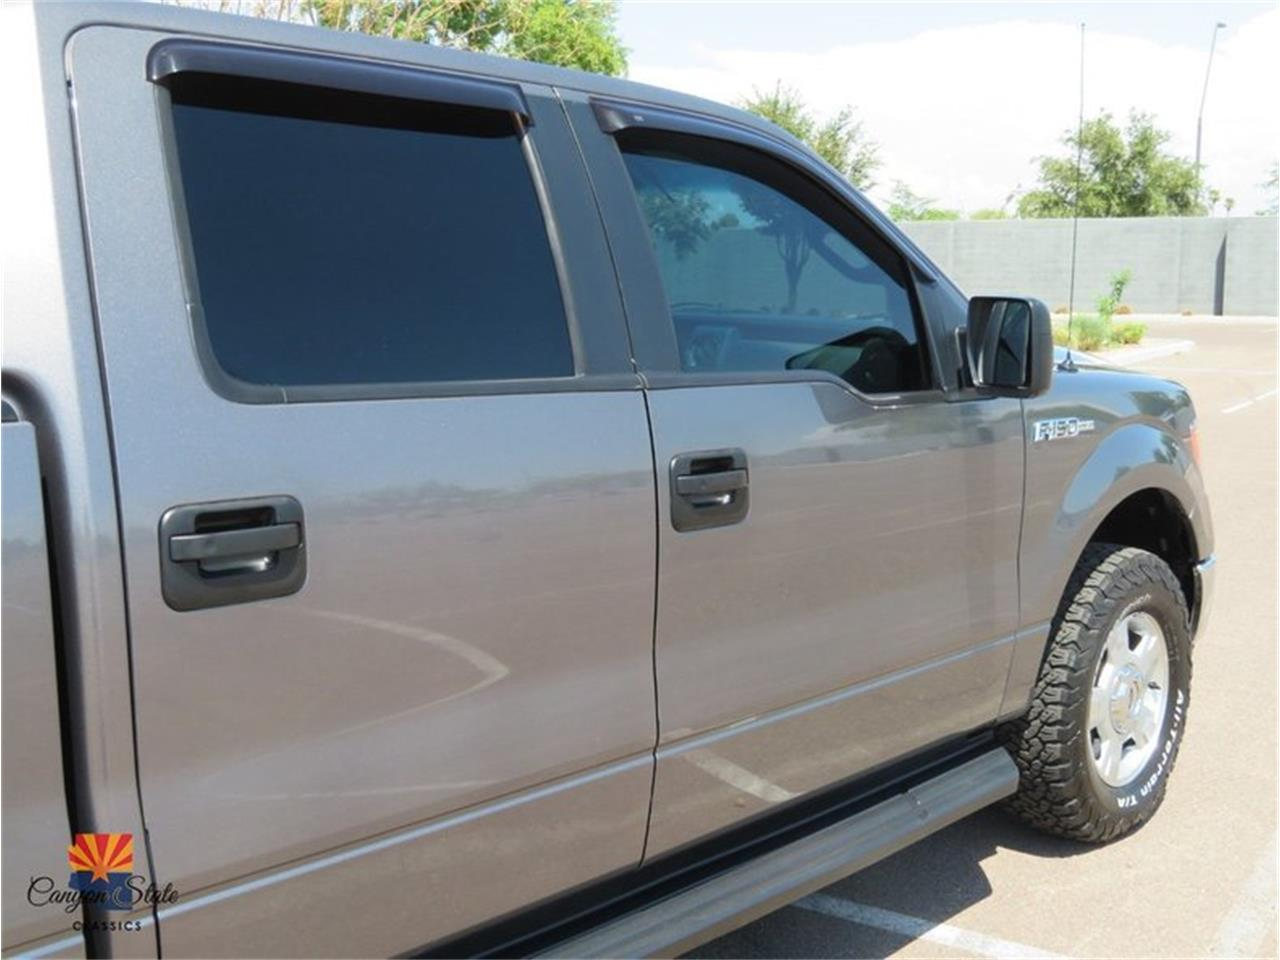 2014 Ford F150 for sale in Tempe, AZ – photo 46